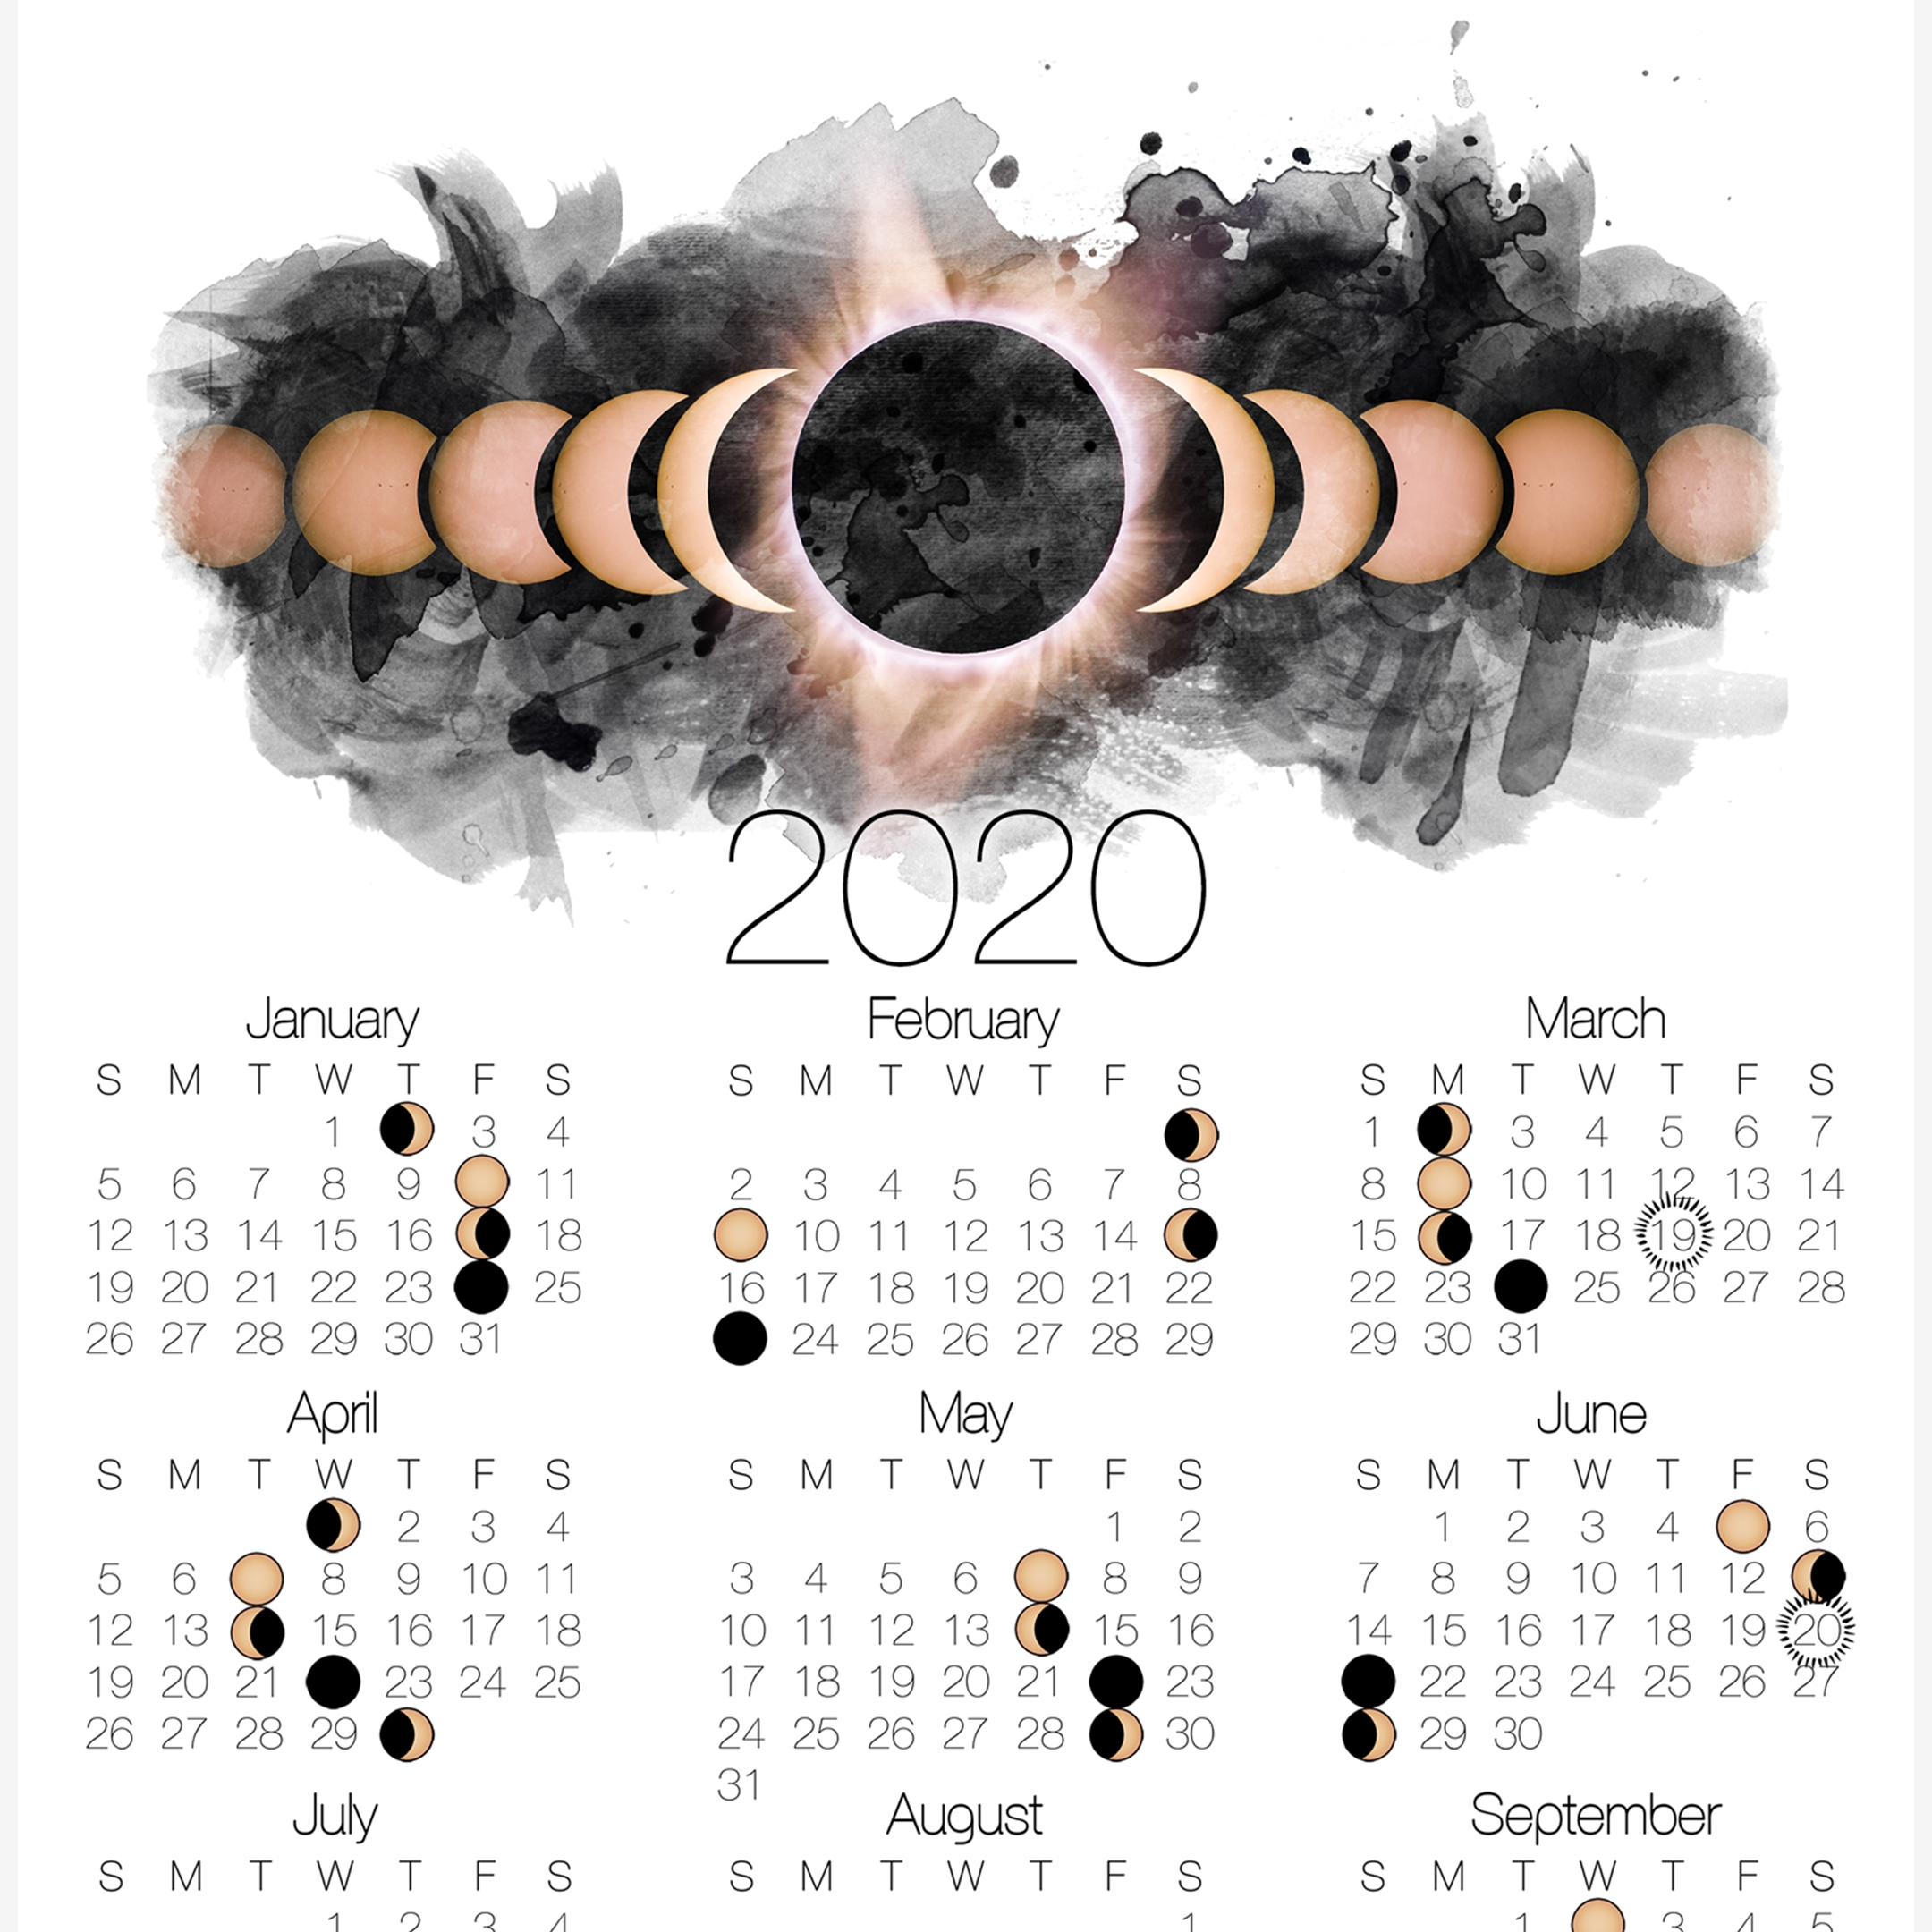 2020 Moon Phase Calendar With Solar Eclipse In 2020 | Moon  Solar Lunar Calendar 2020